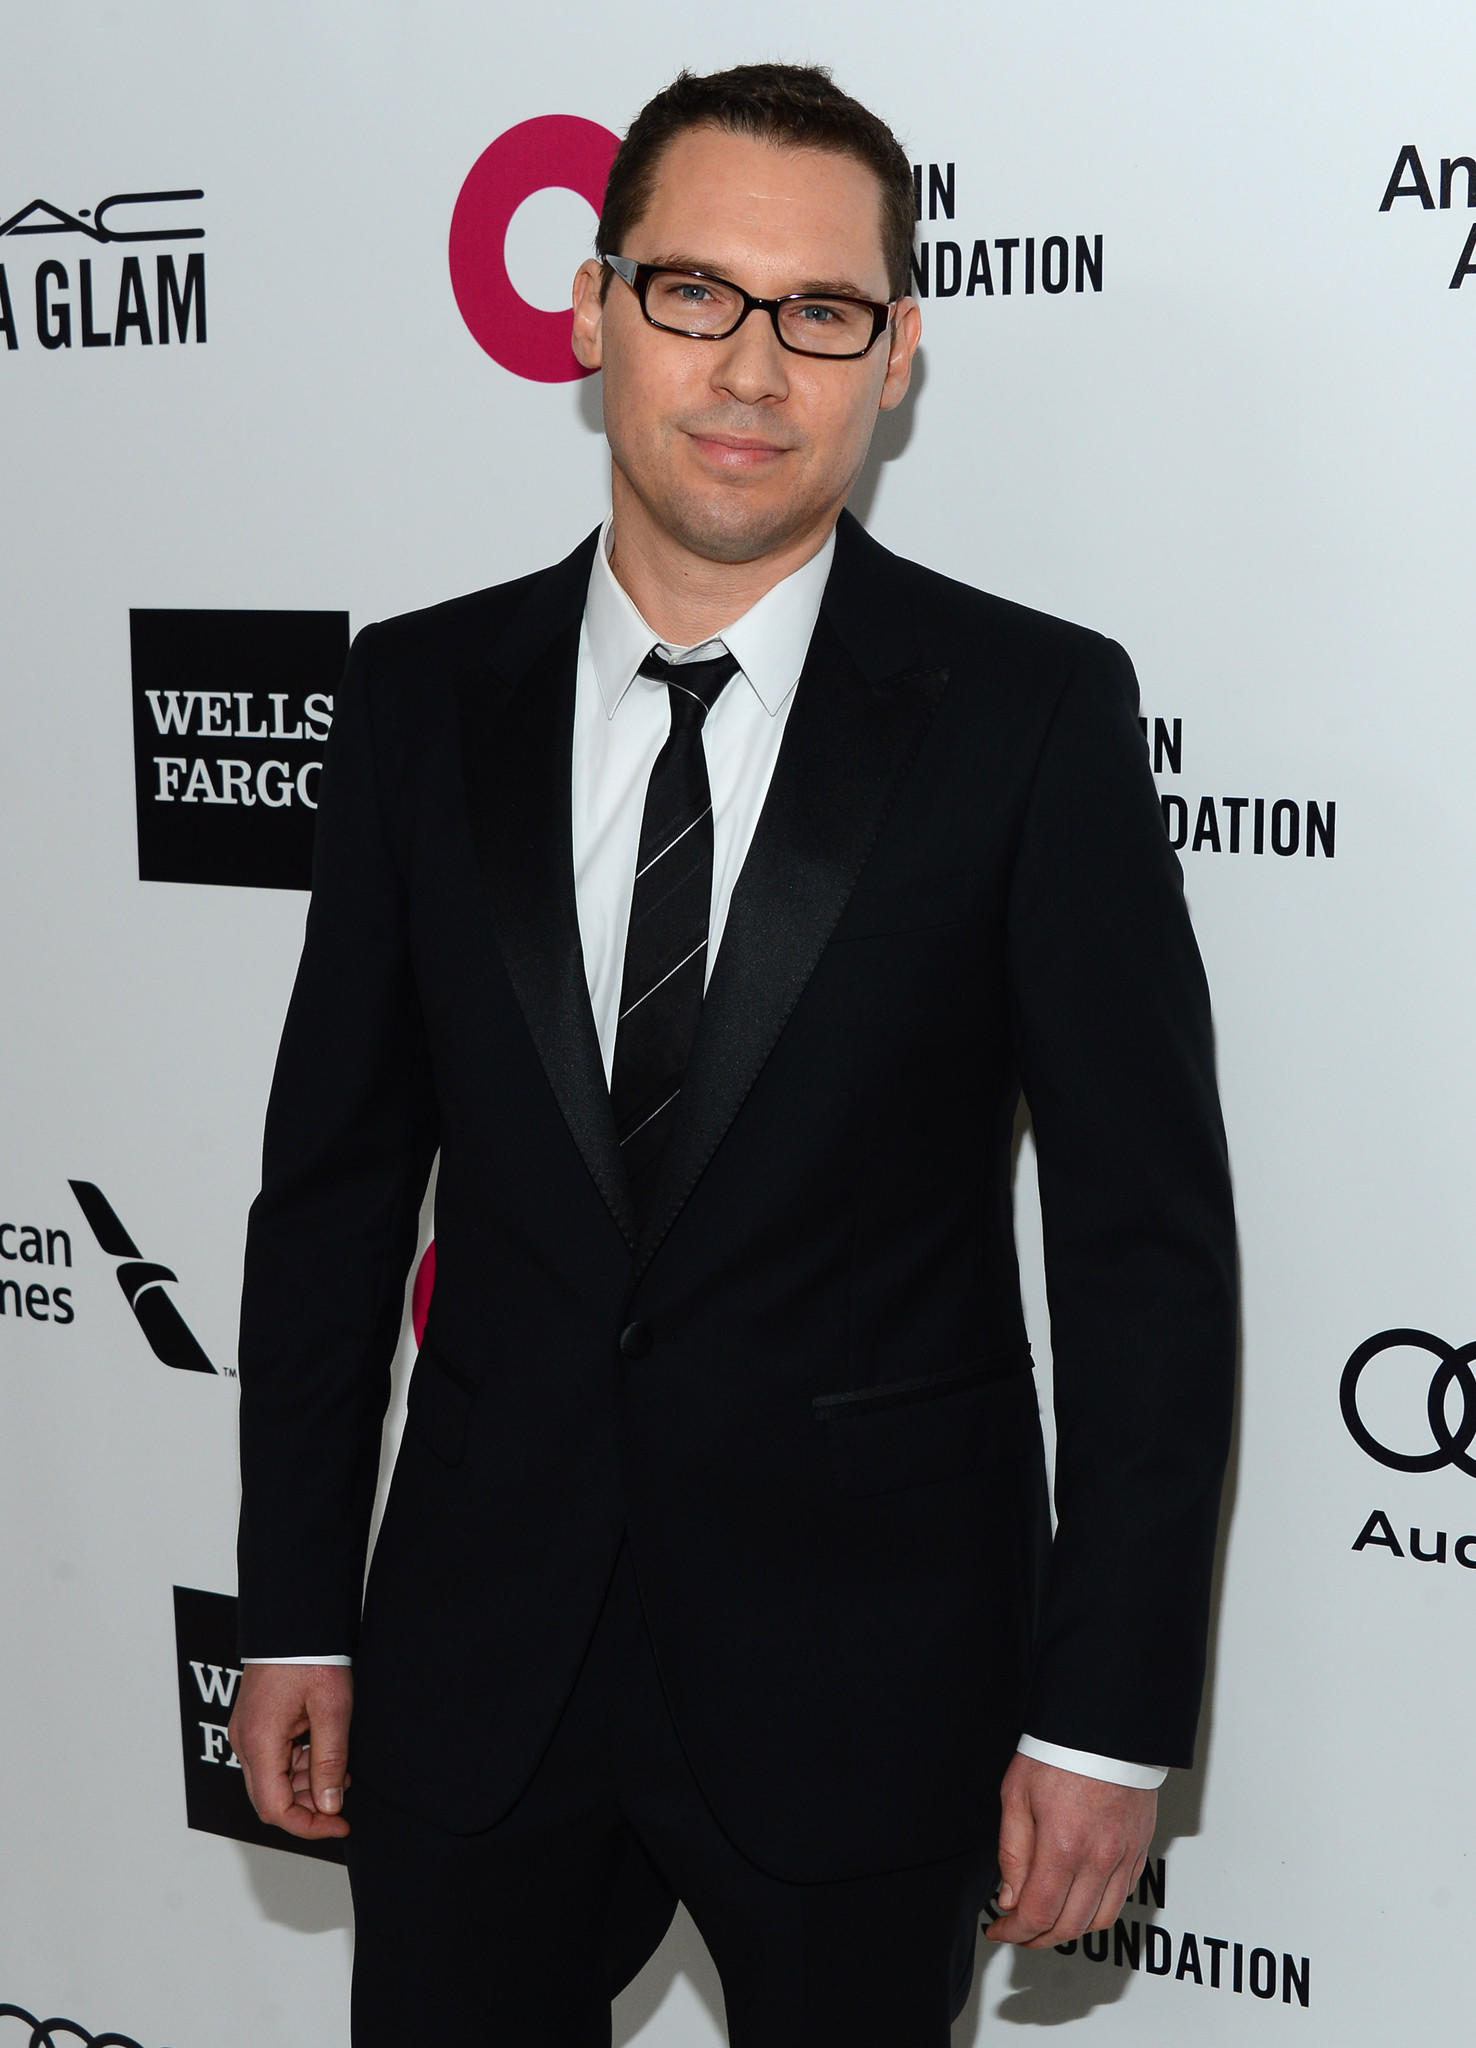 Director Bryan Singer attends the 22nd Annual Elton John AIDS Foundation's Oscar Viewing Party on March 2 in Los Angeles, California.